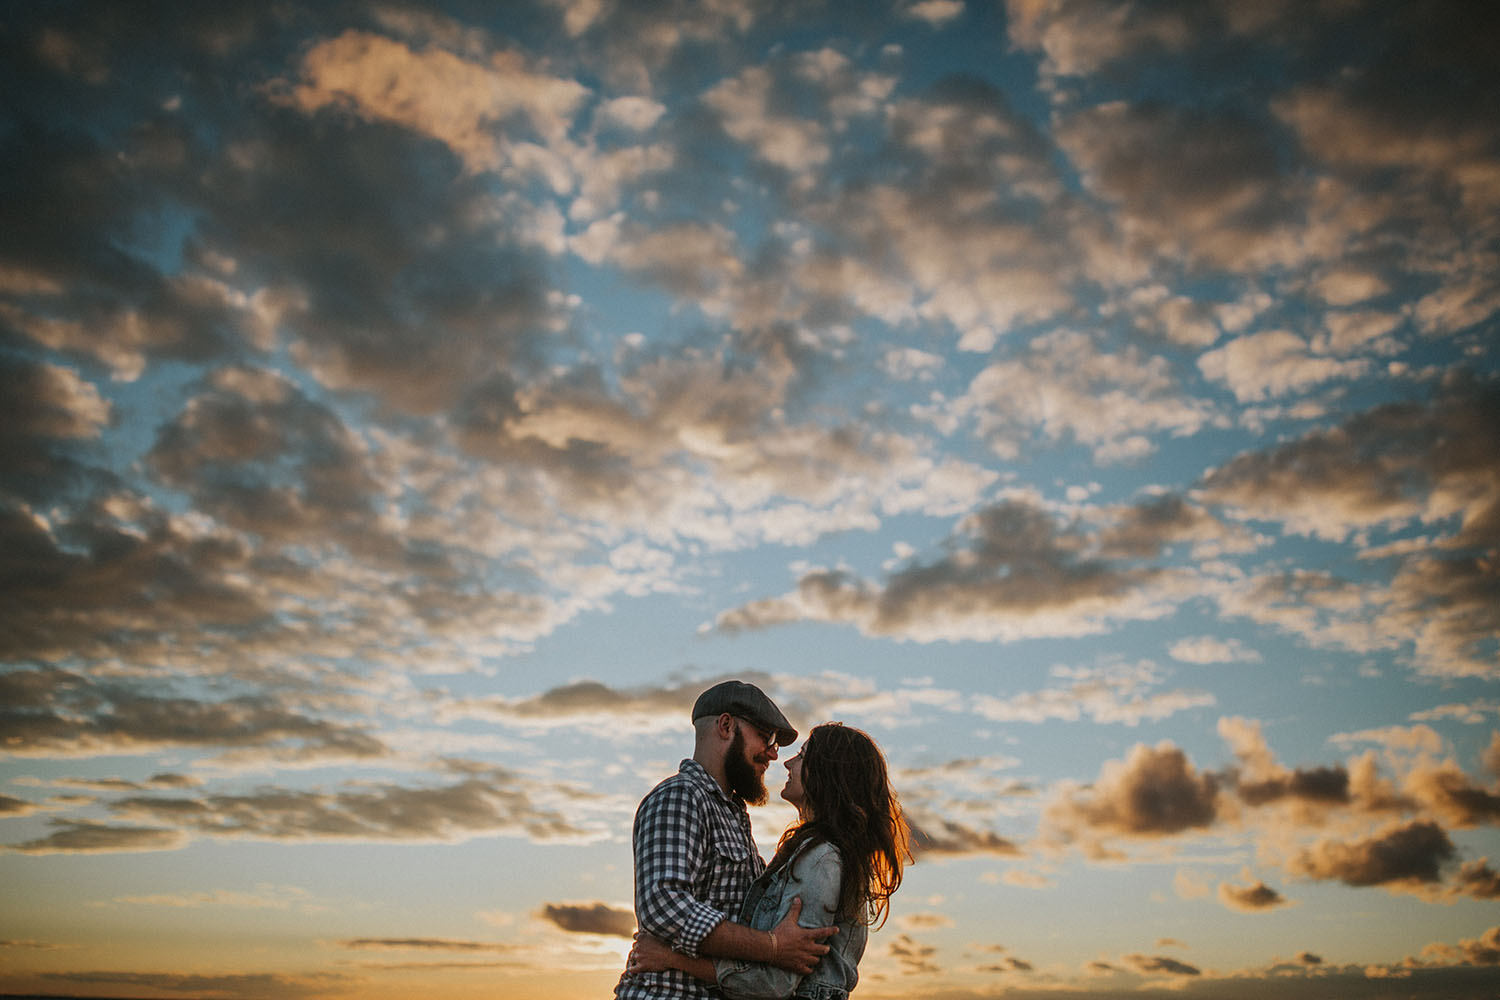 Northern Michigan Engagement Session - Torey and Stephen at Sleeping Bear